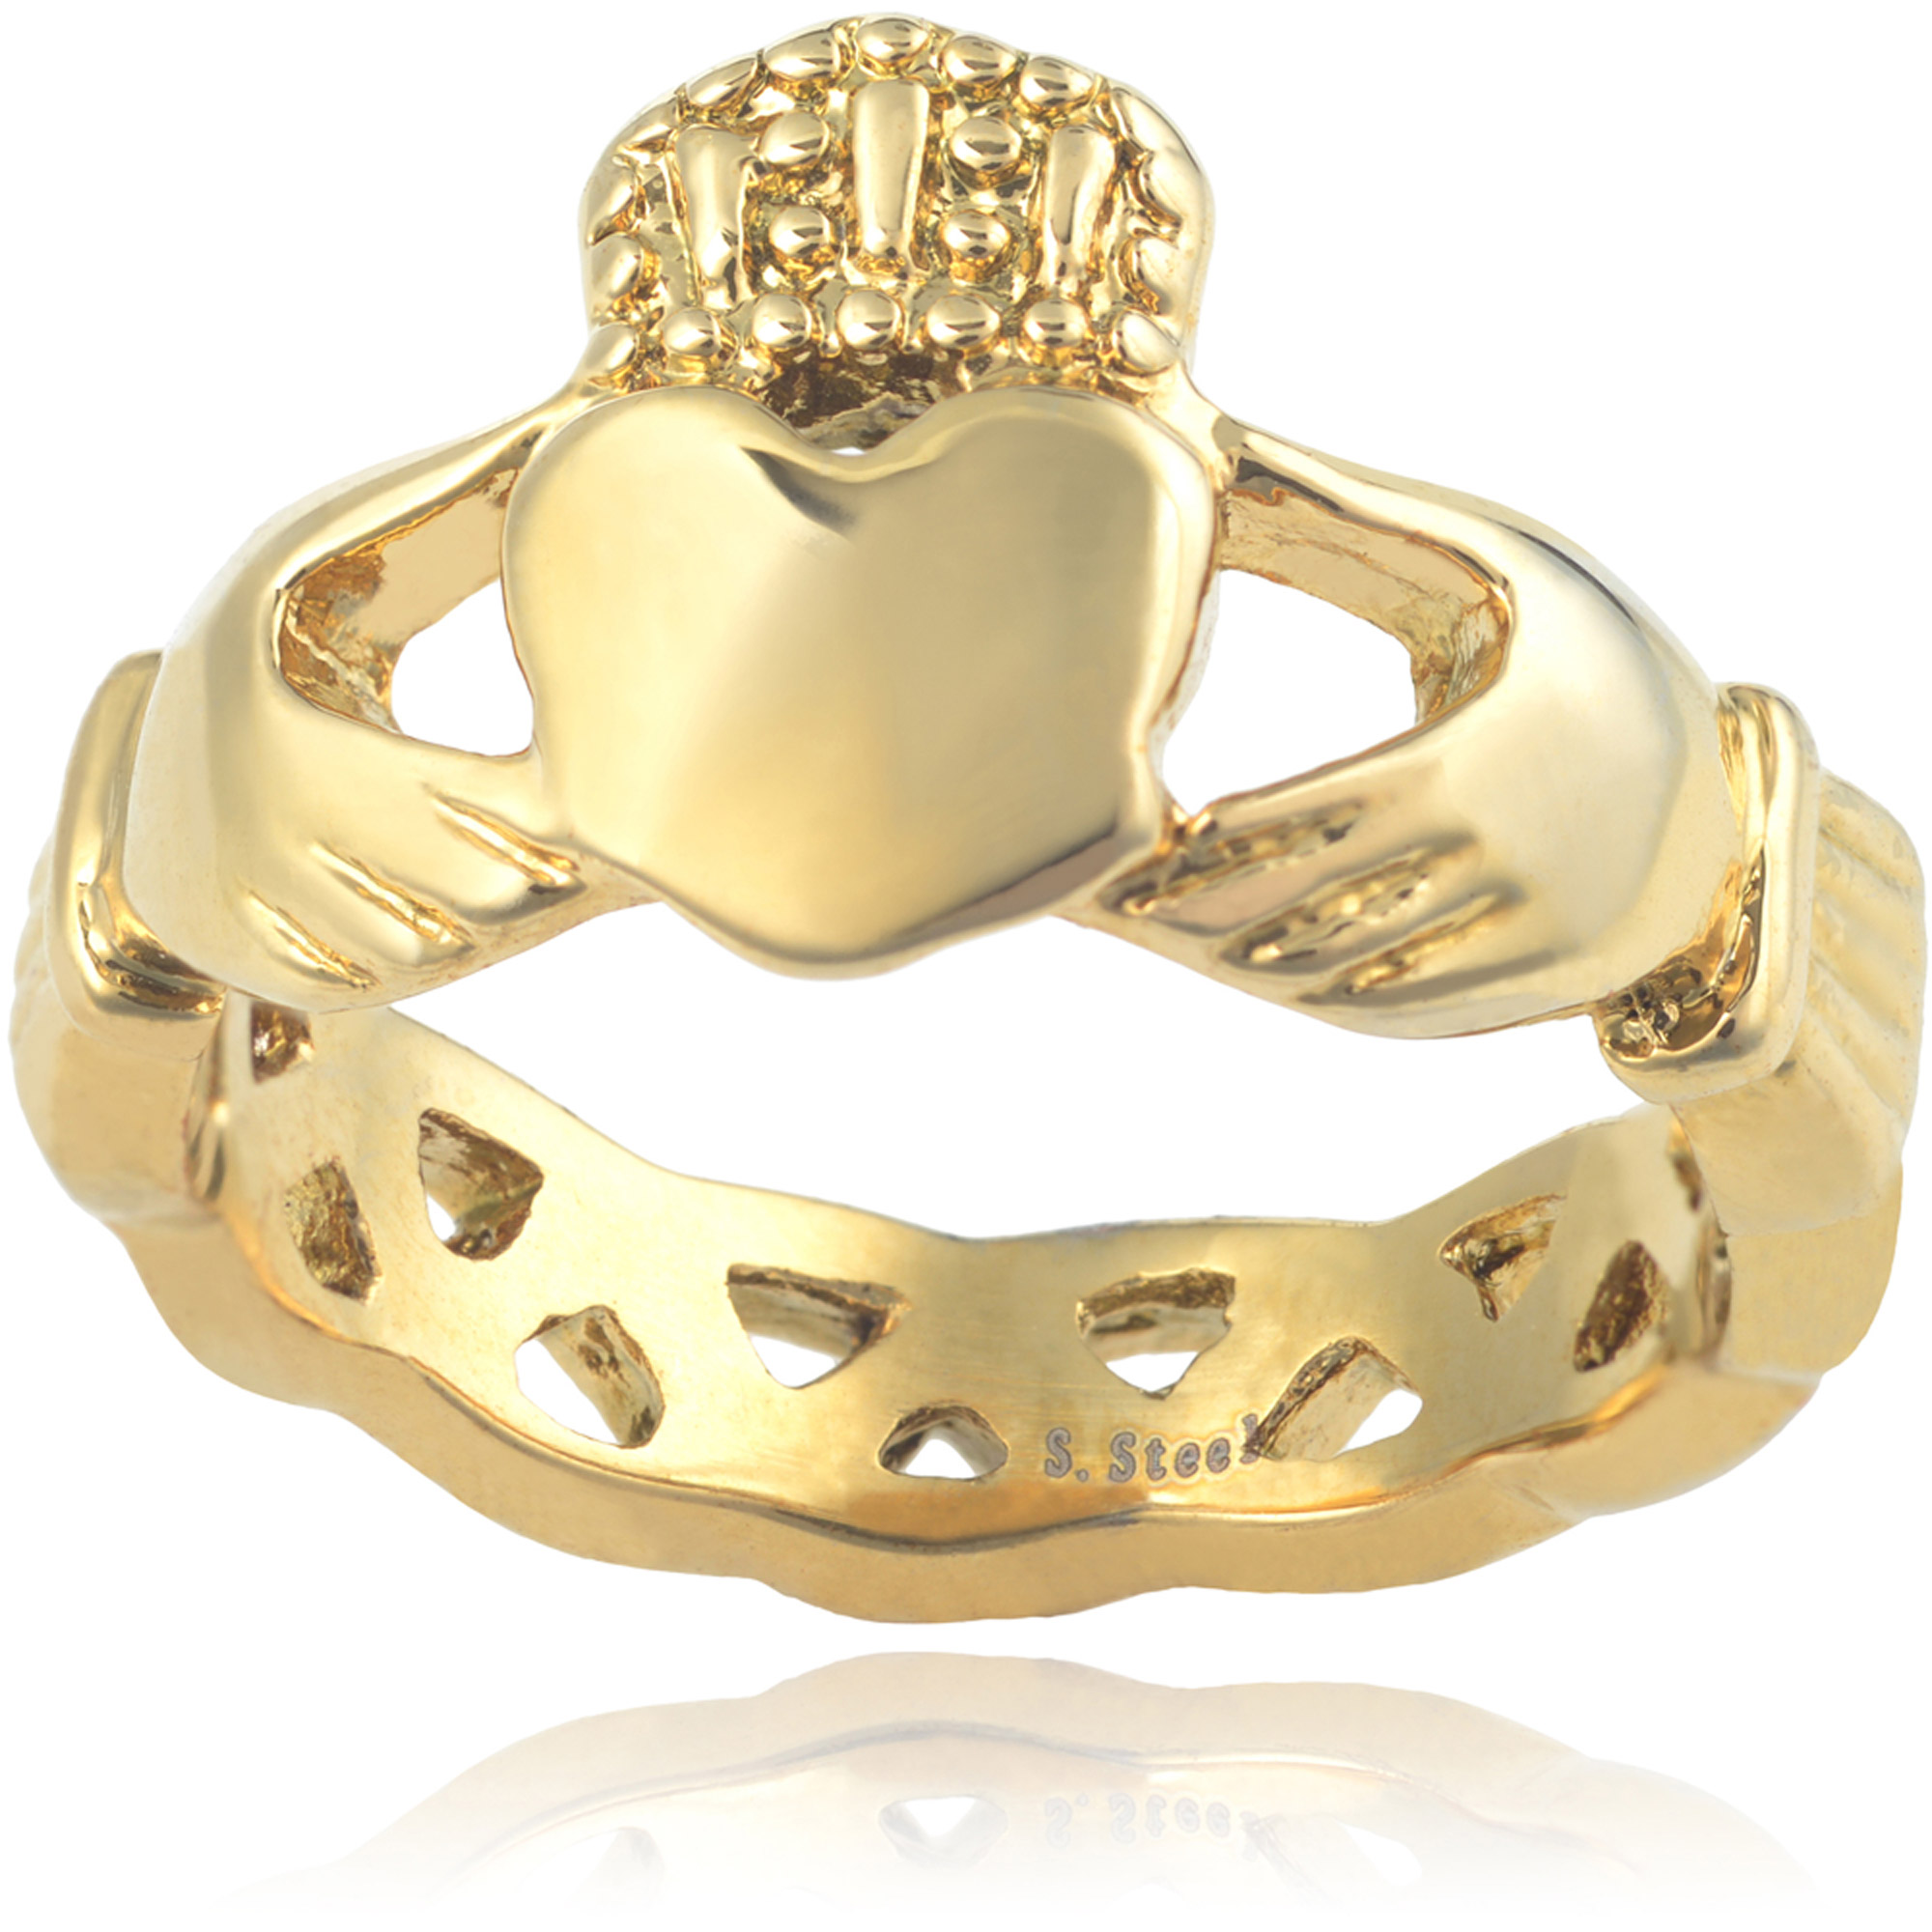 Brinley Co. Women's Stainless Steel Claddagh Ring, Gold